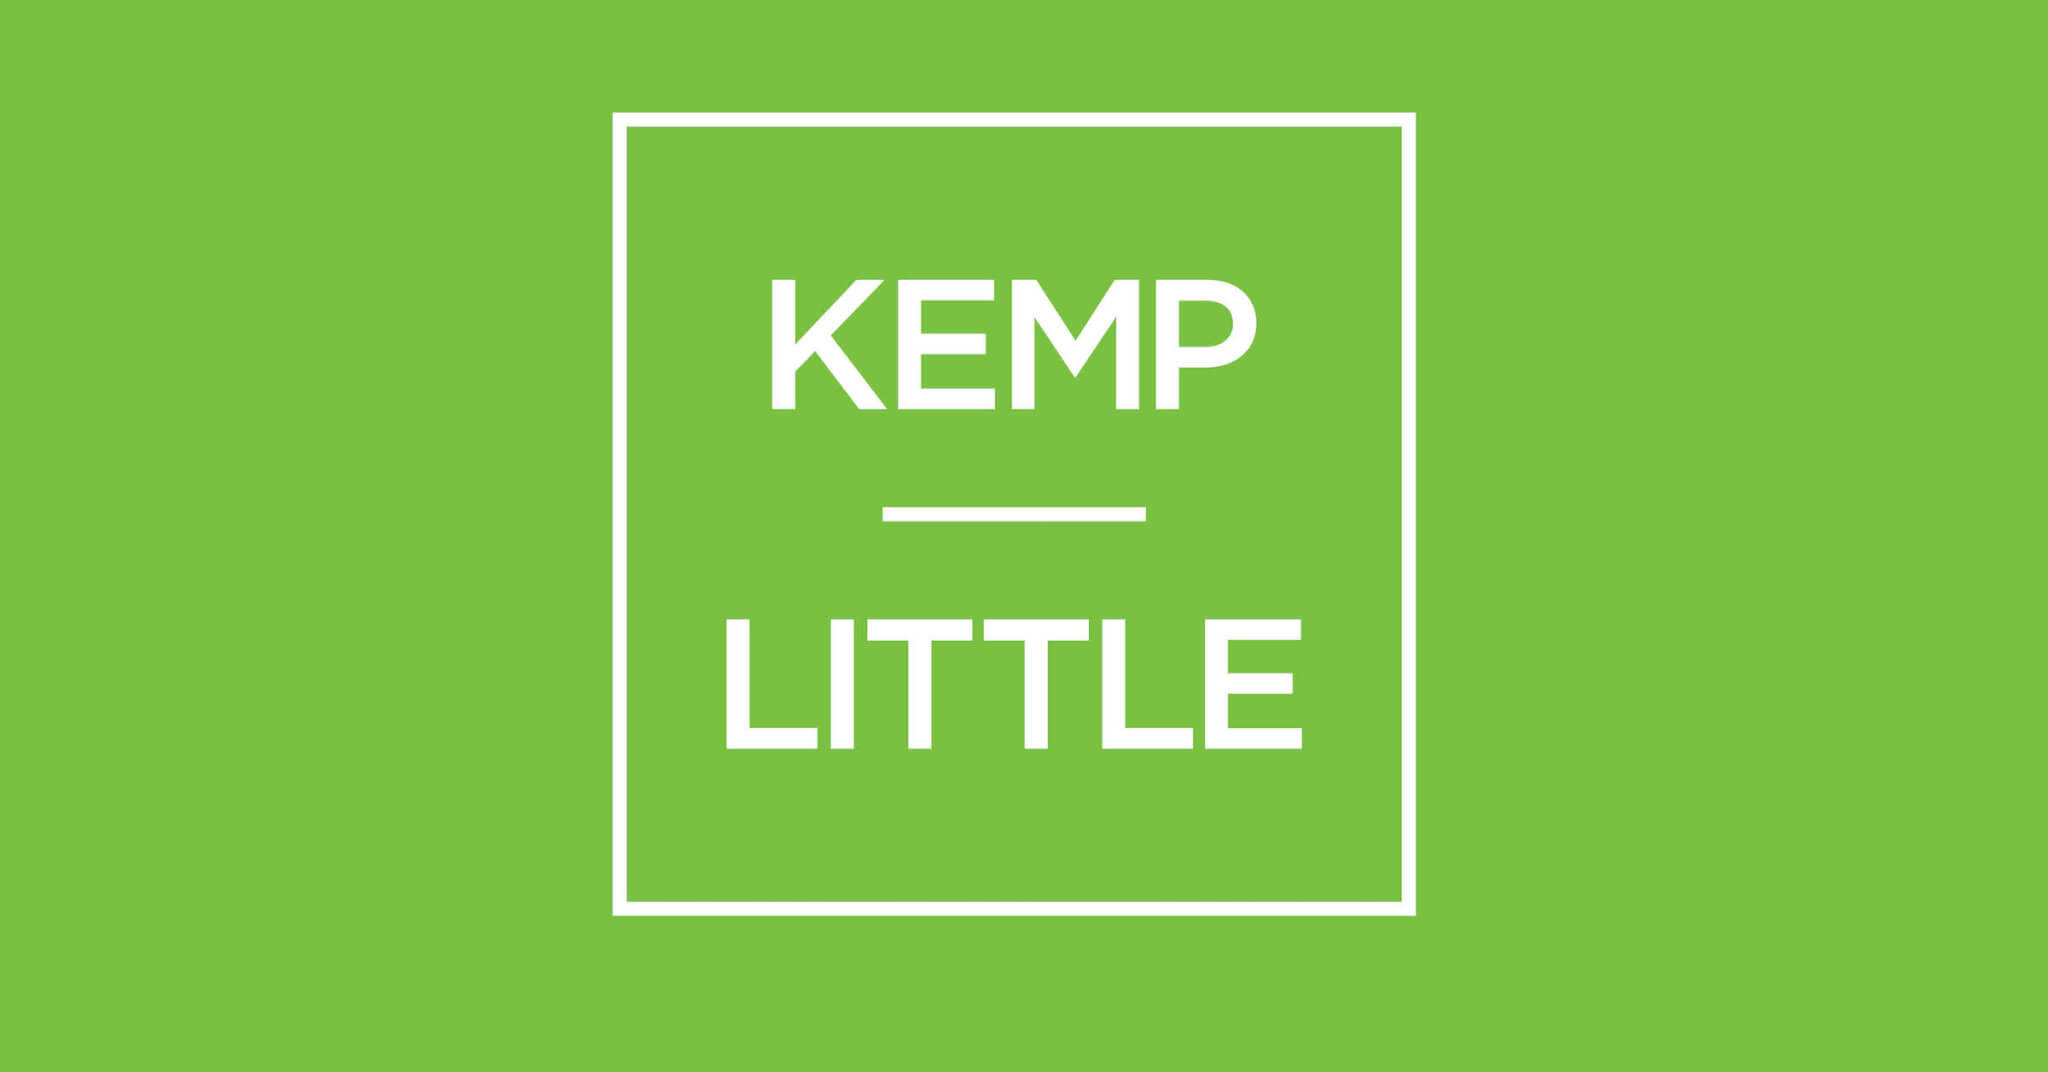 Kemp Little   Lawyers and thought leaders who are passionate